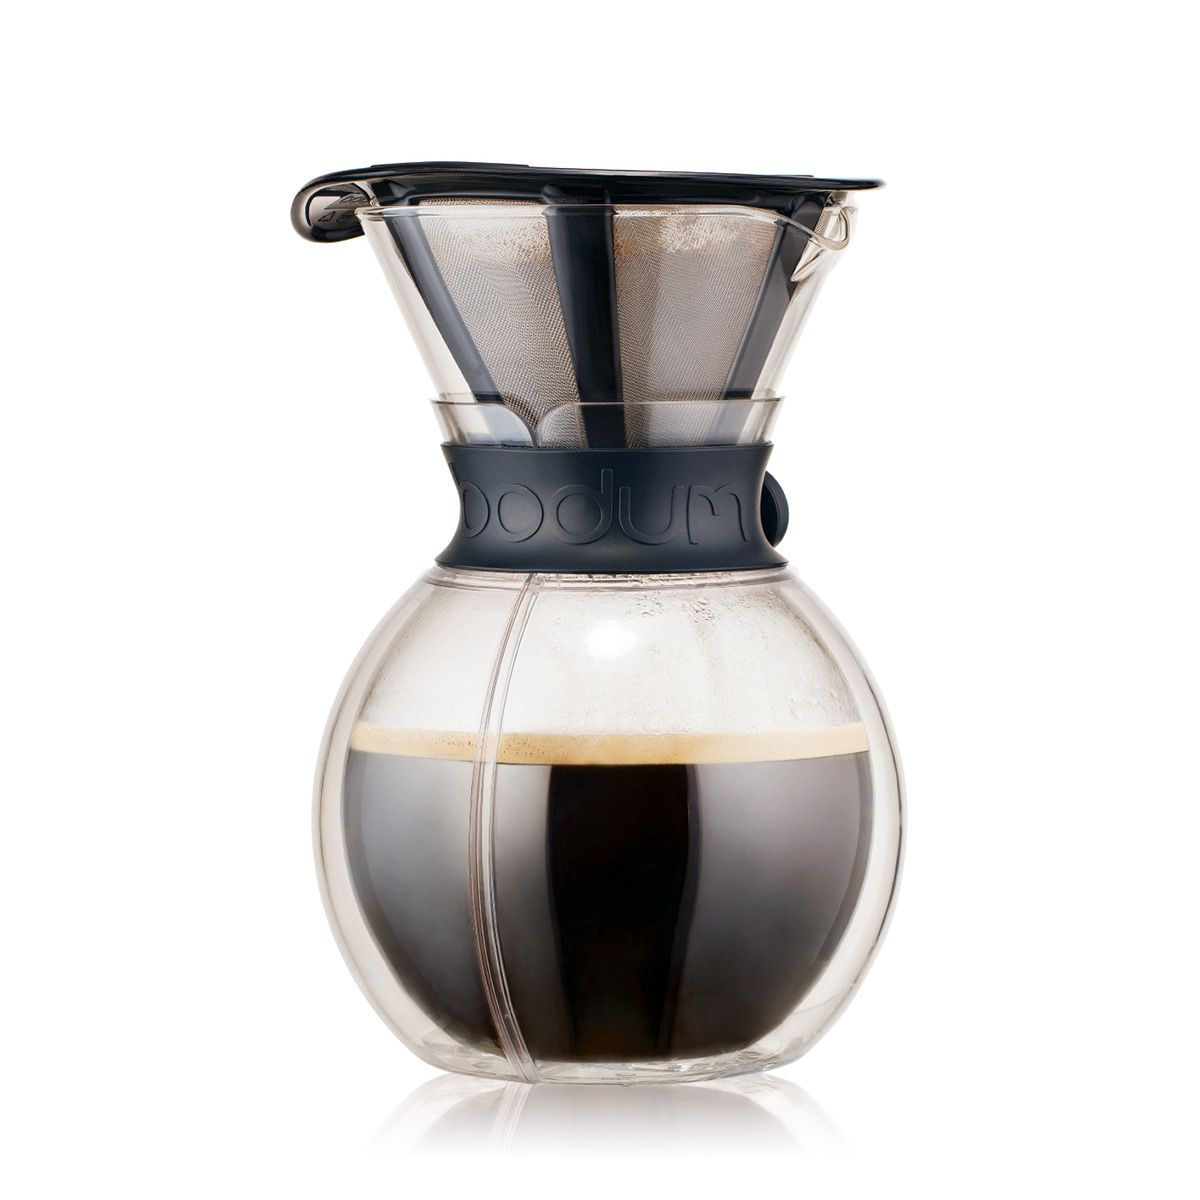 Double Wall POUR OVER Bodum